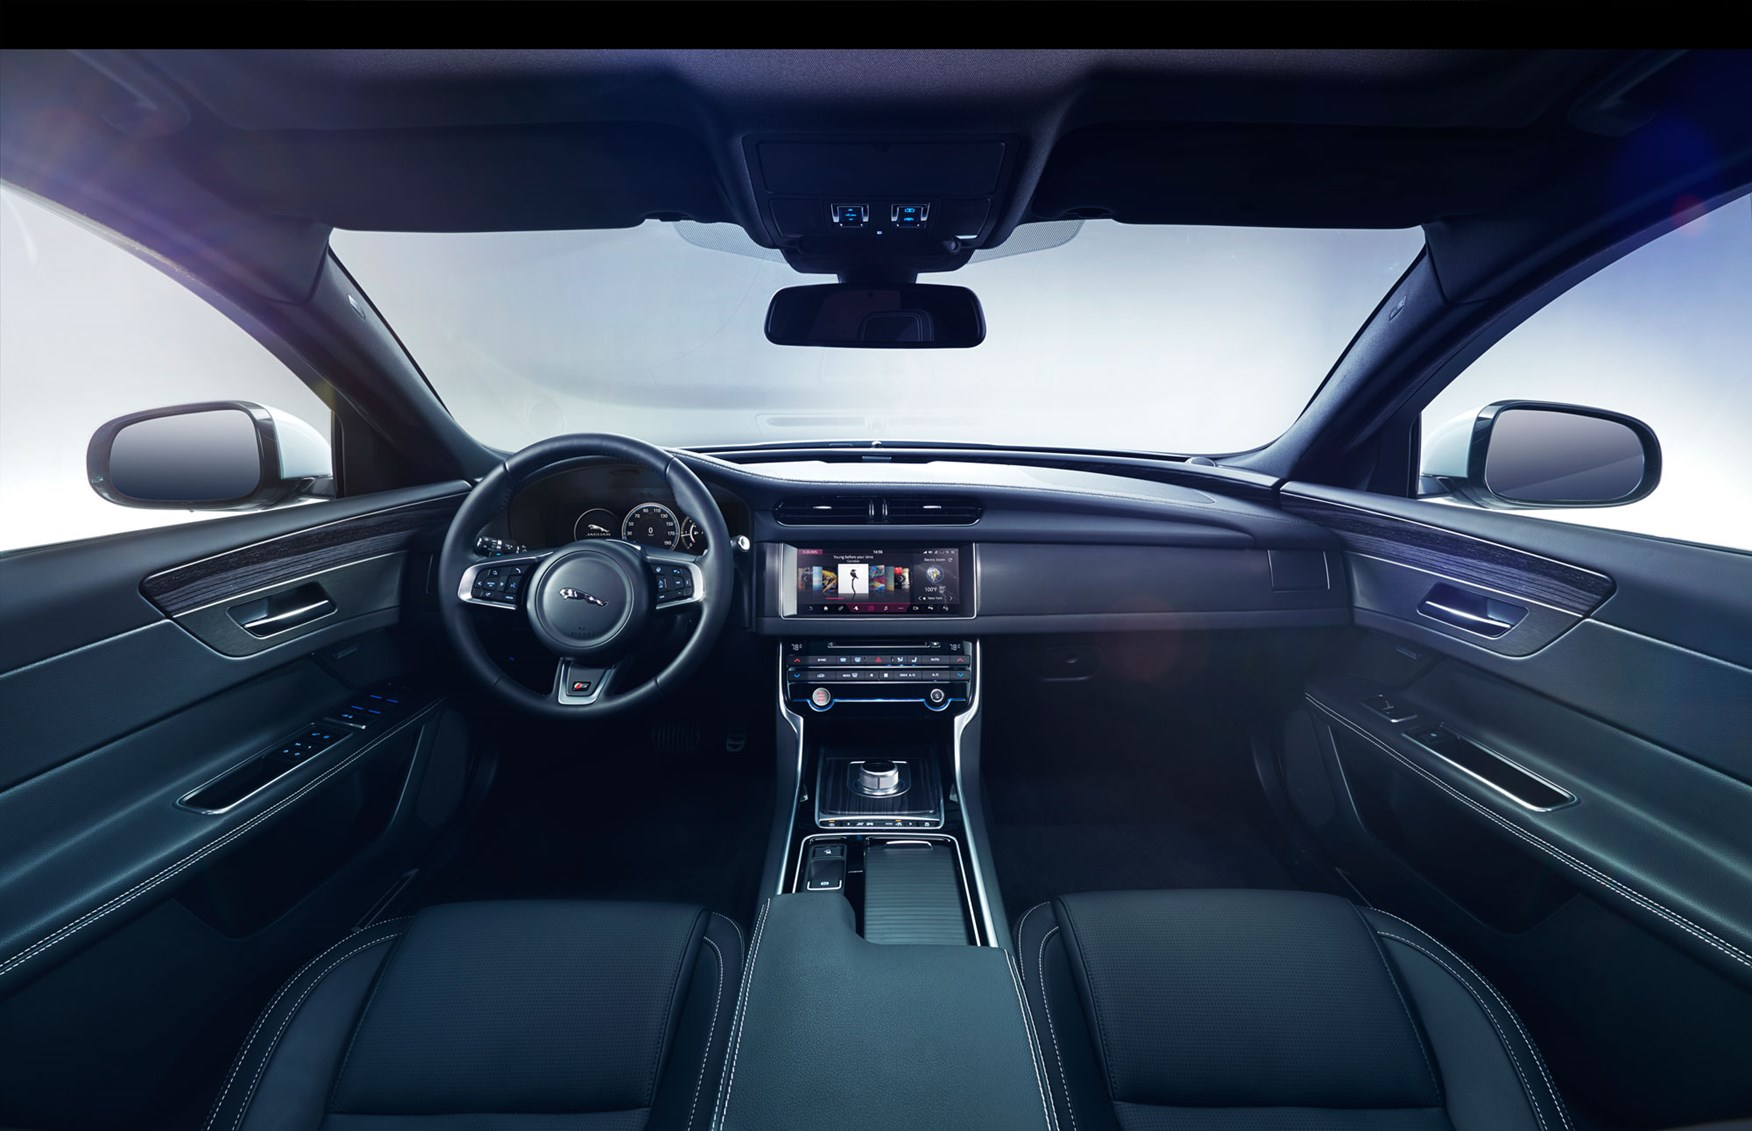 amazing-design-of-the-black-leather-seat-added-with-black-dash-as-the-jaguar-xe-2015-interior